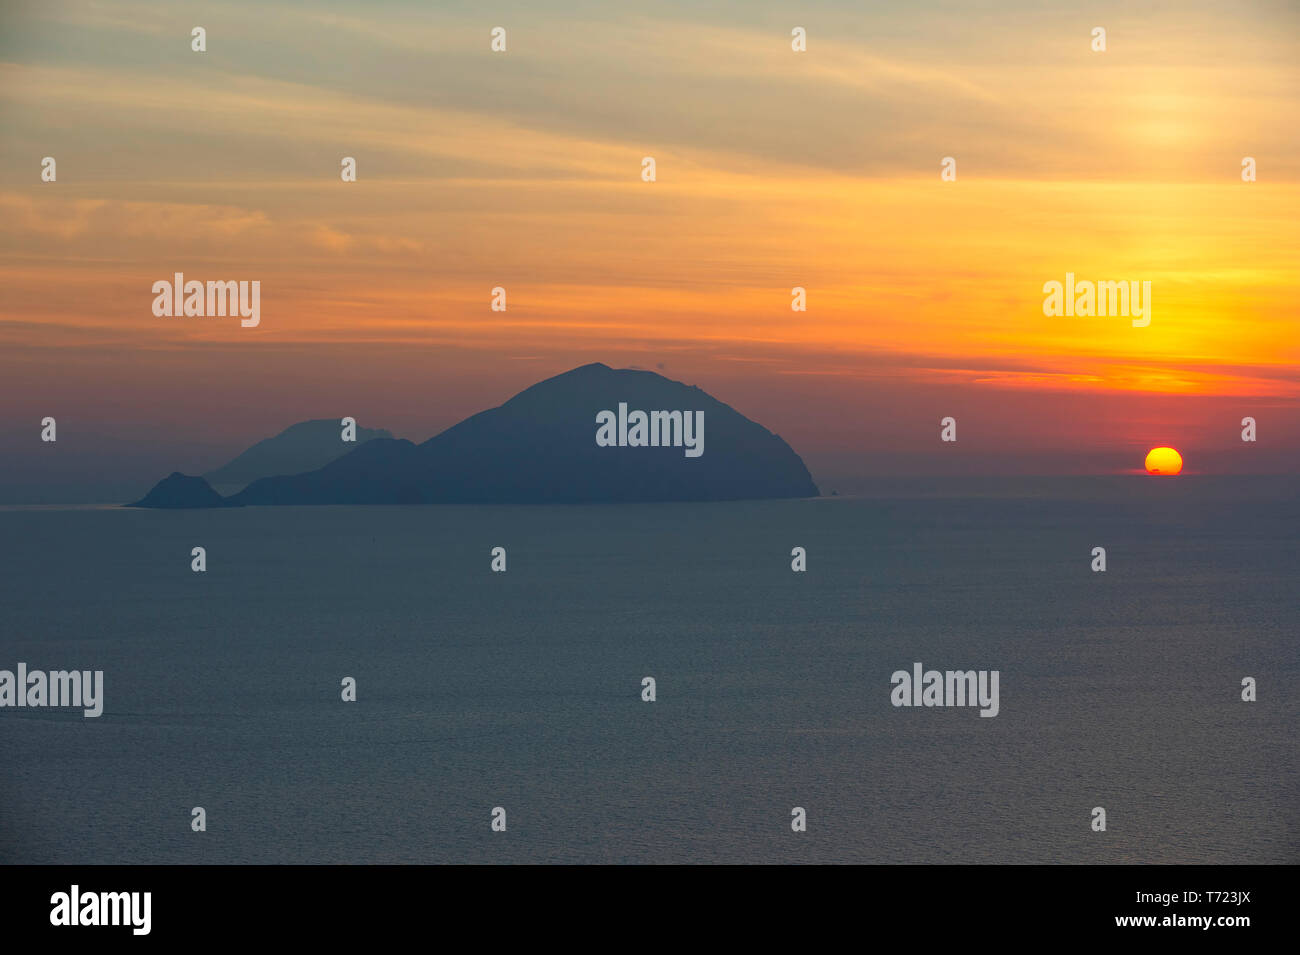 Sunset on Filicudi Island from Pollara, Salina, Aeolianislands,  Sicily, Italy Stock Photo